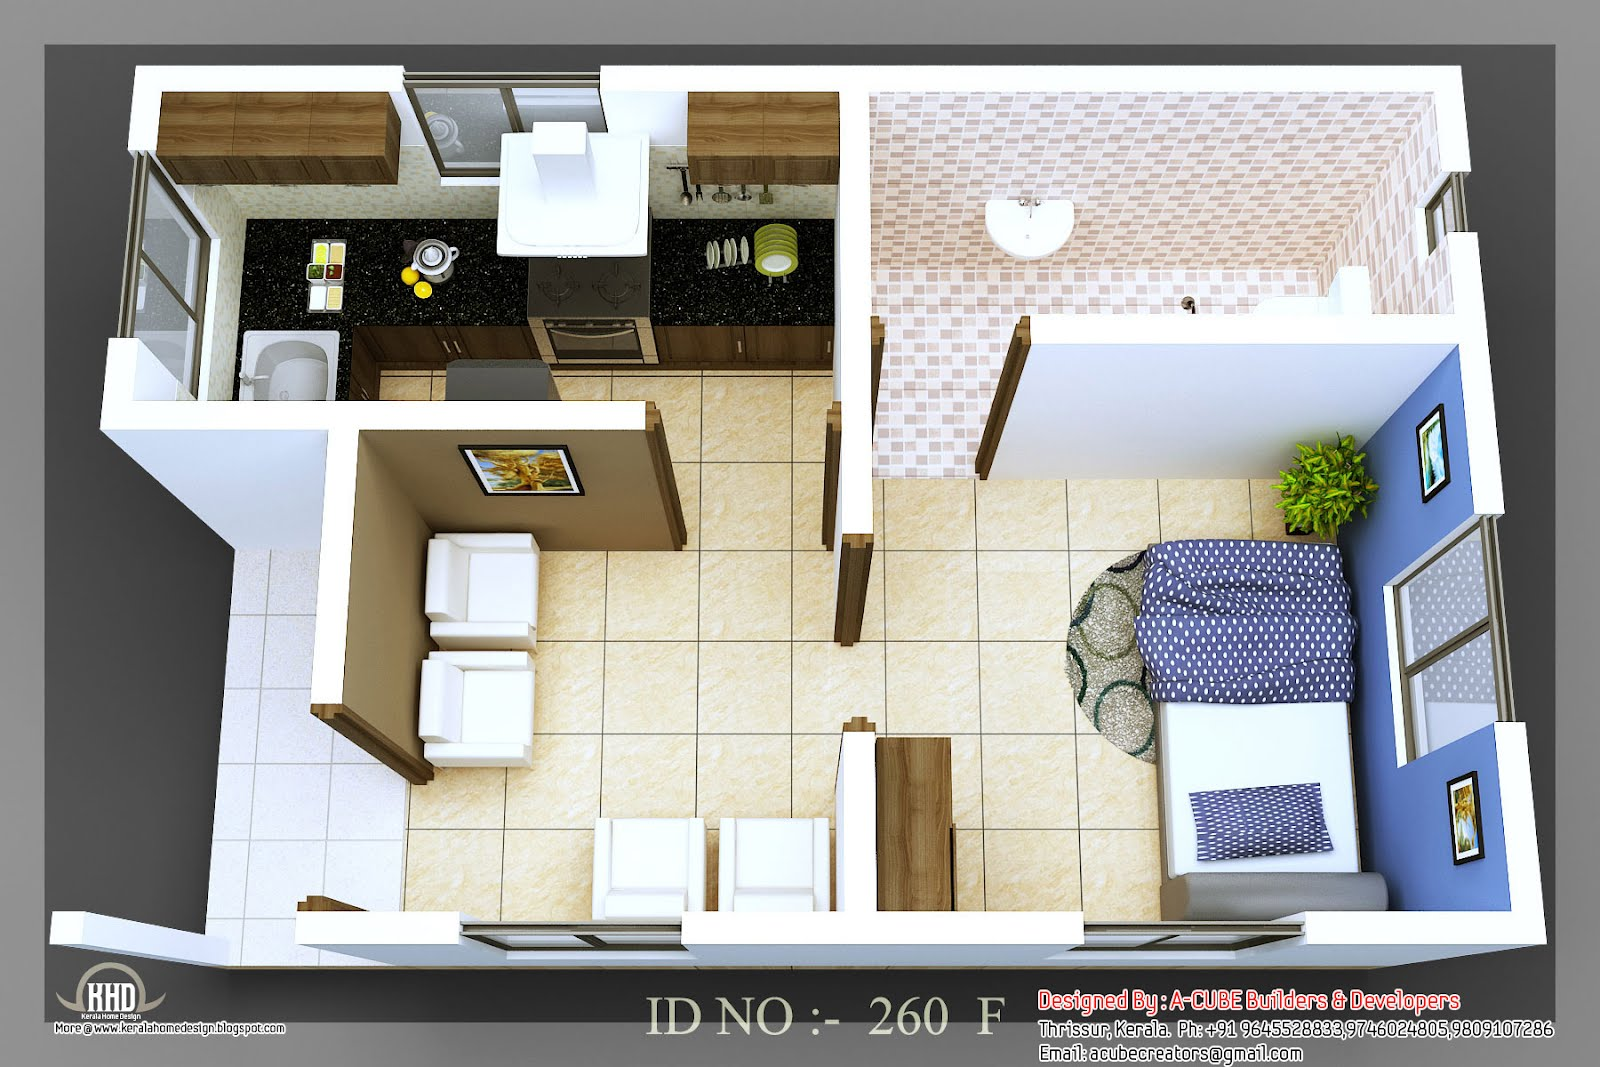 3d isometric views of small house plans kerala home for Decor 3d model